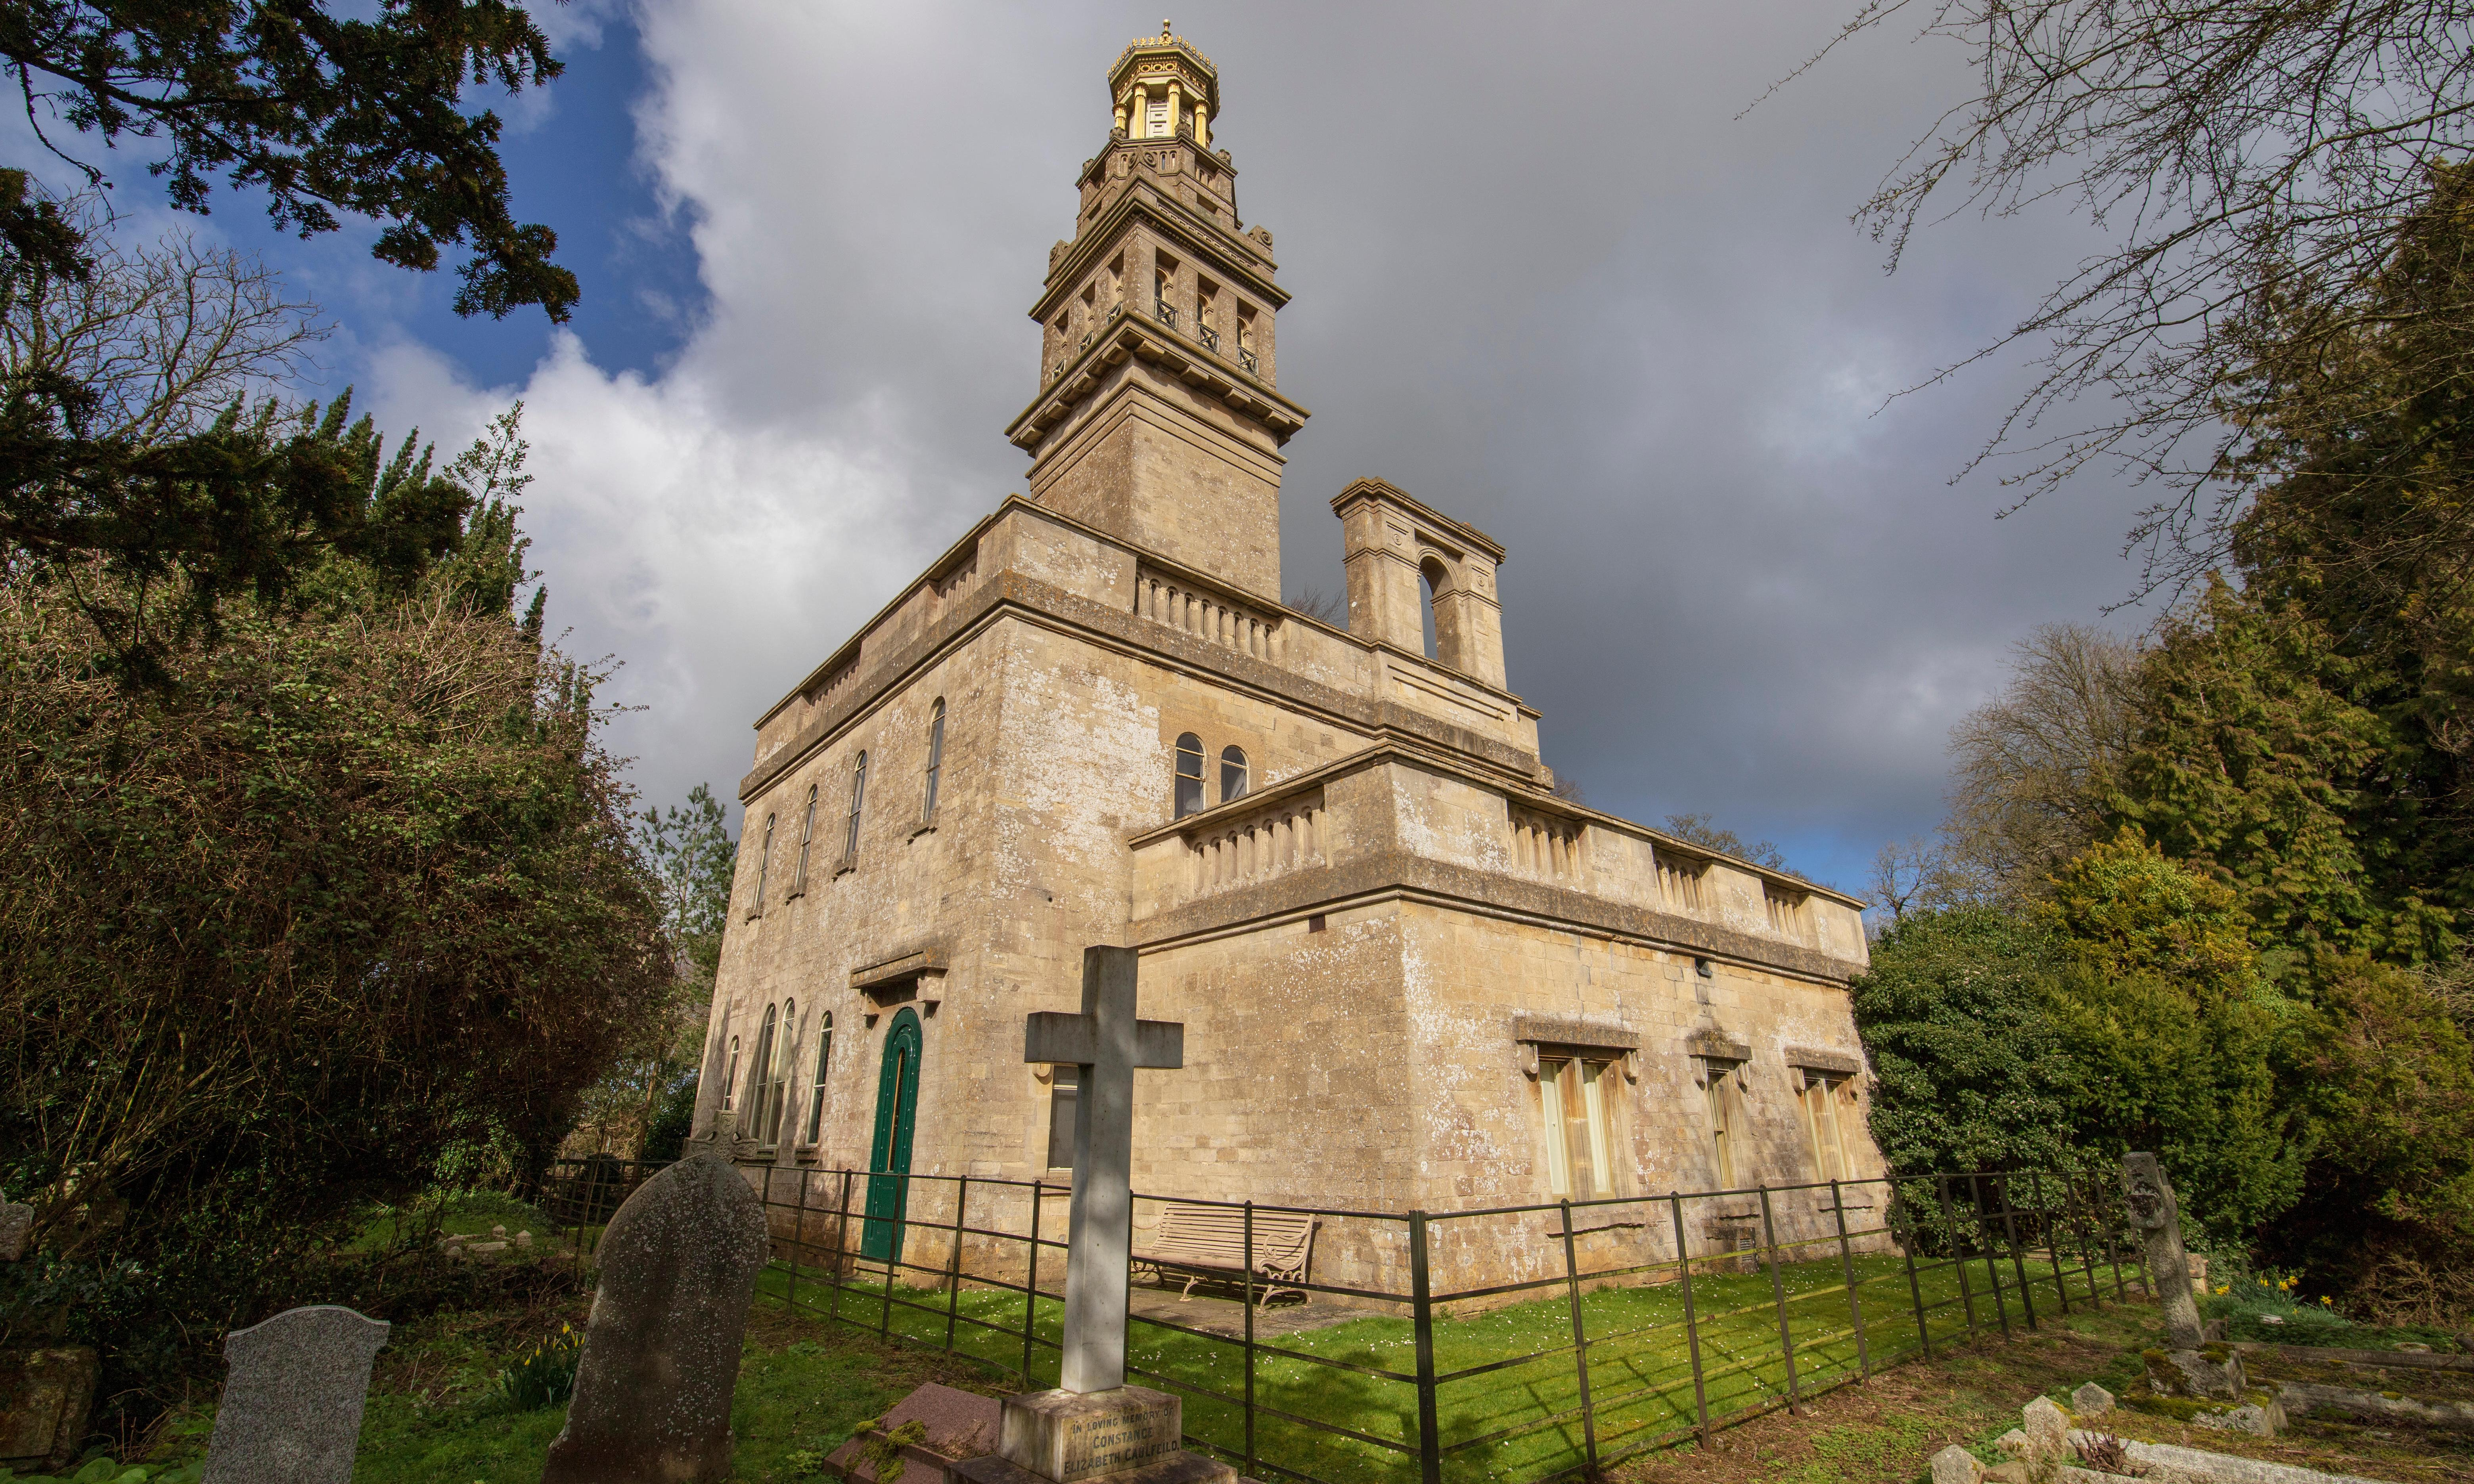 More than 200 English sites added to Heritage at Risk register